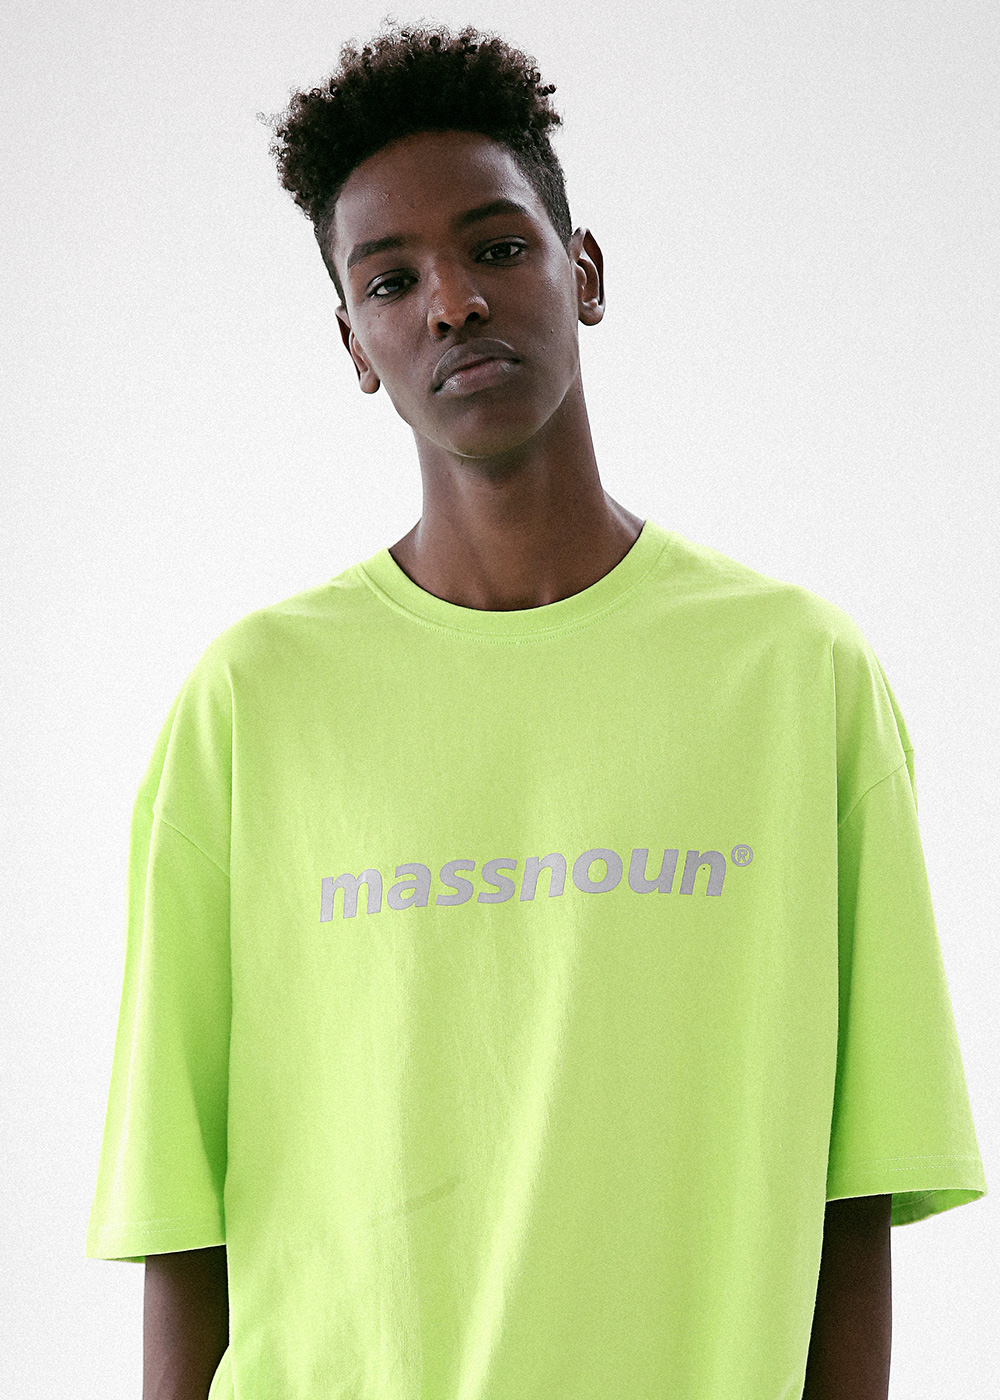 DARKMOON SCOTCH OVERSIZED T-SHIRT MUVTS011-LG